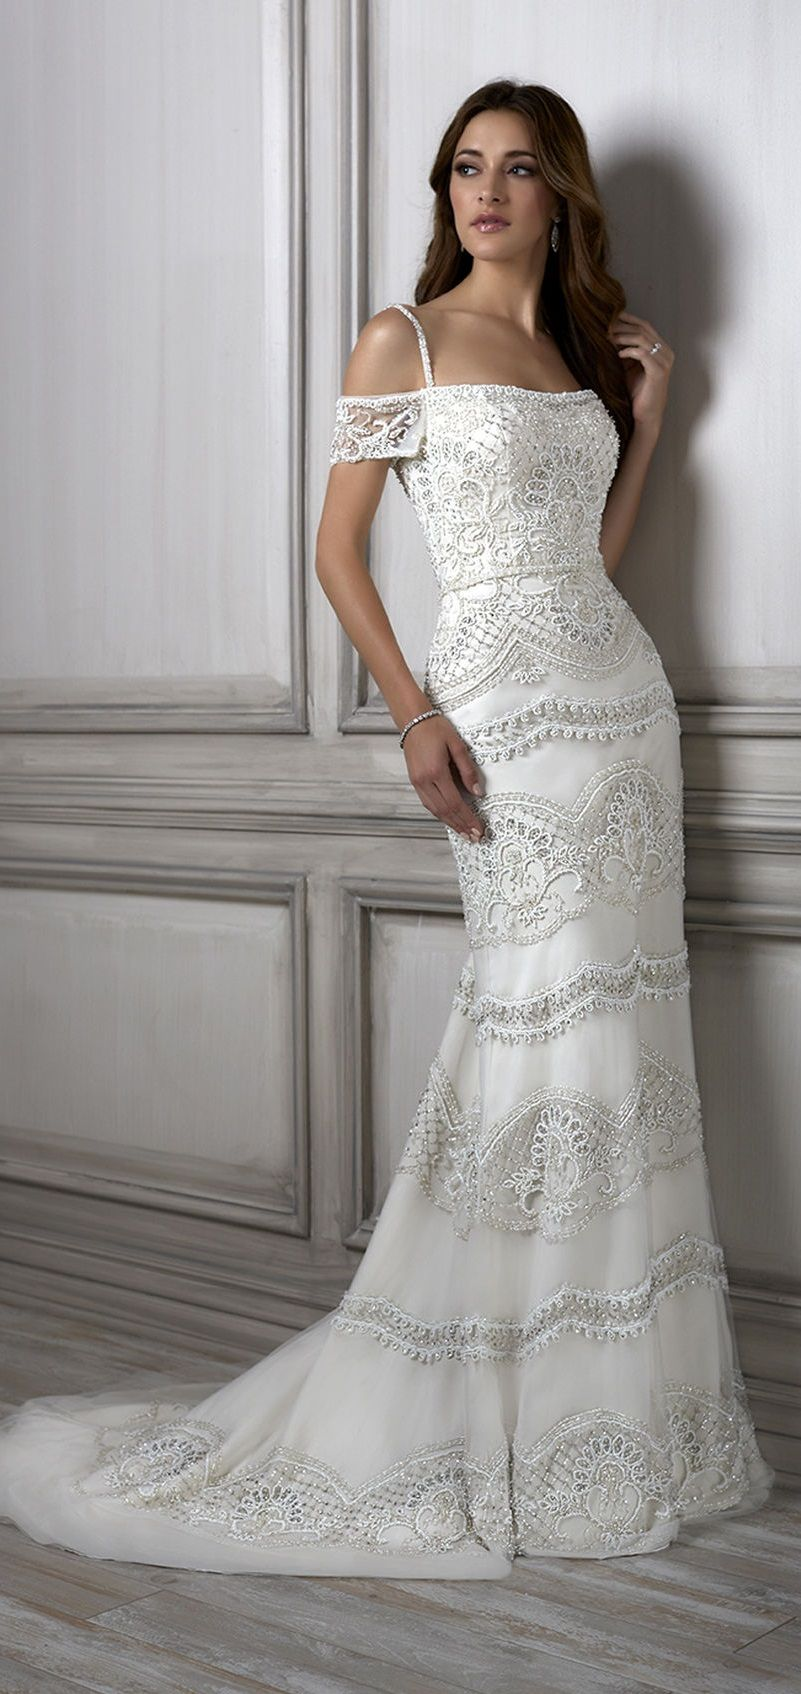 wedding dress by Adrianna Papell | Wedding Dresses - Special Day ...